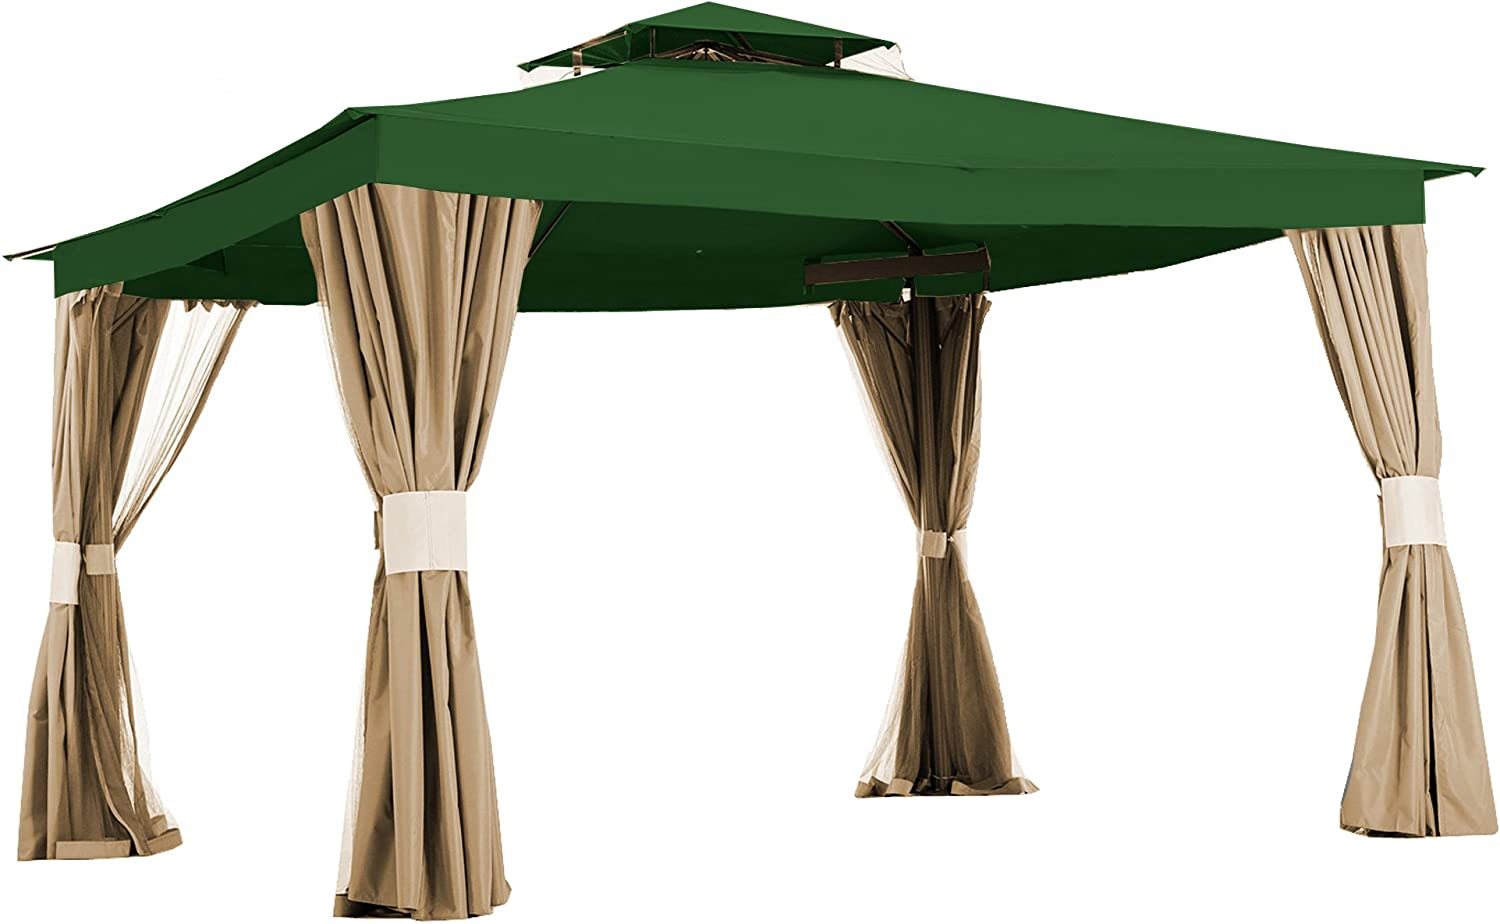 Garden Winds Replacement Canopy Top Cover for Living Home 10 x 12 Gazebo – Riplock 350 – Green